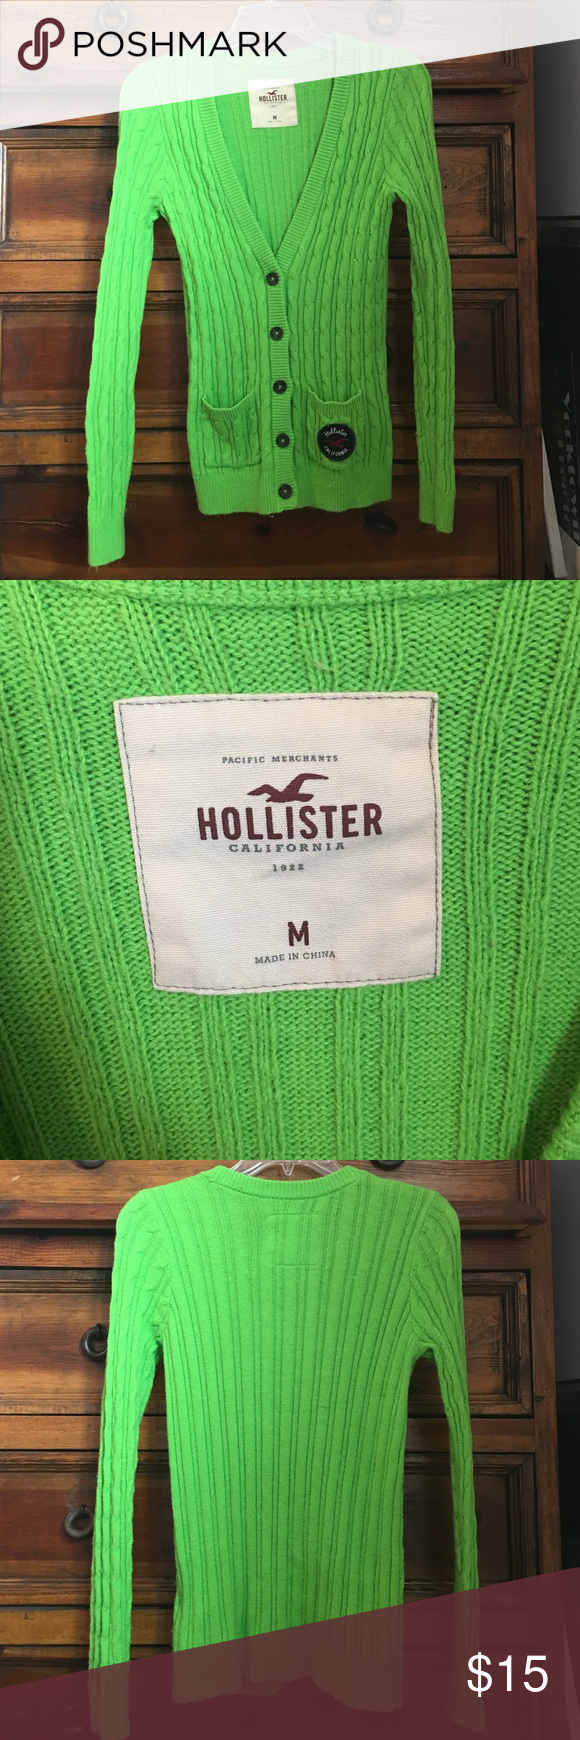 Green Hollister sweater/cardigan 60% cotton, 35% nylon,5% rabbit hair. In great condition! Hollister Sweaters Cardigans